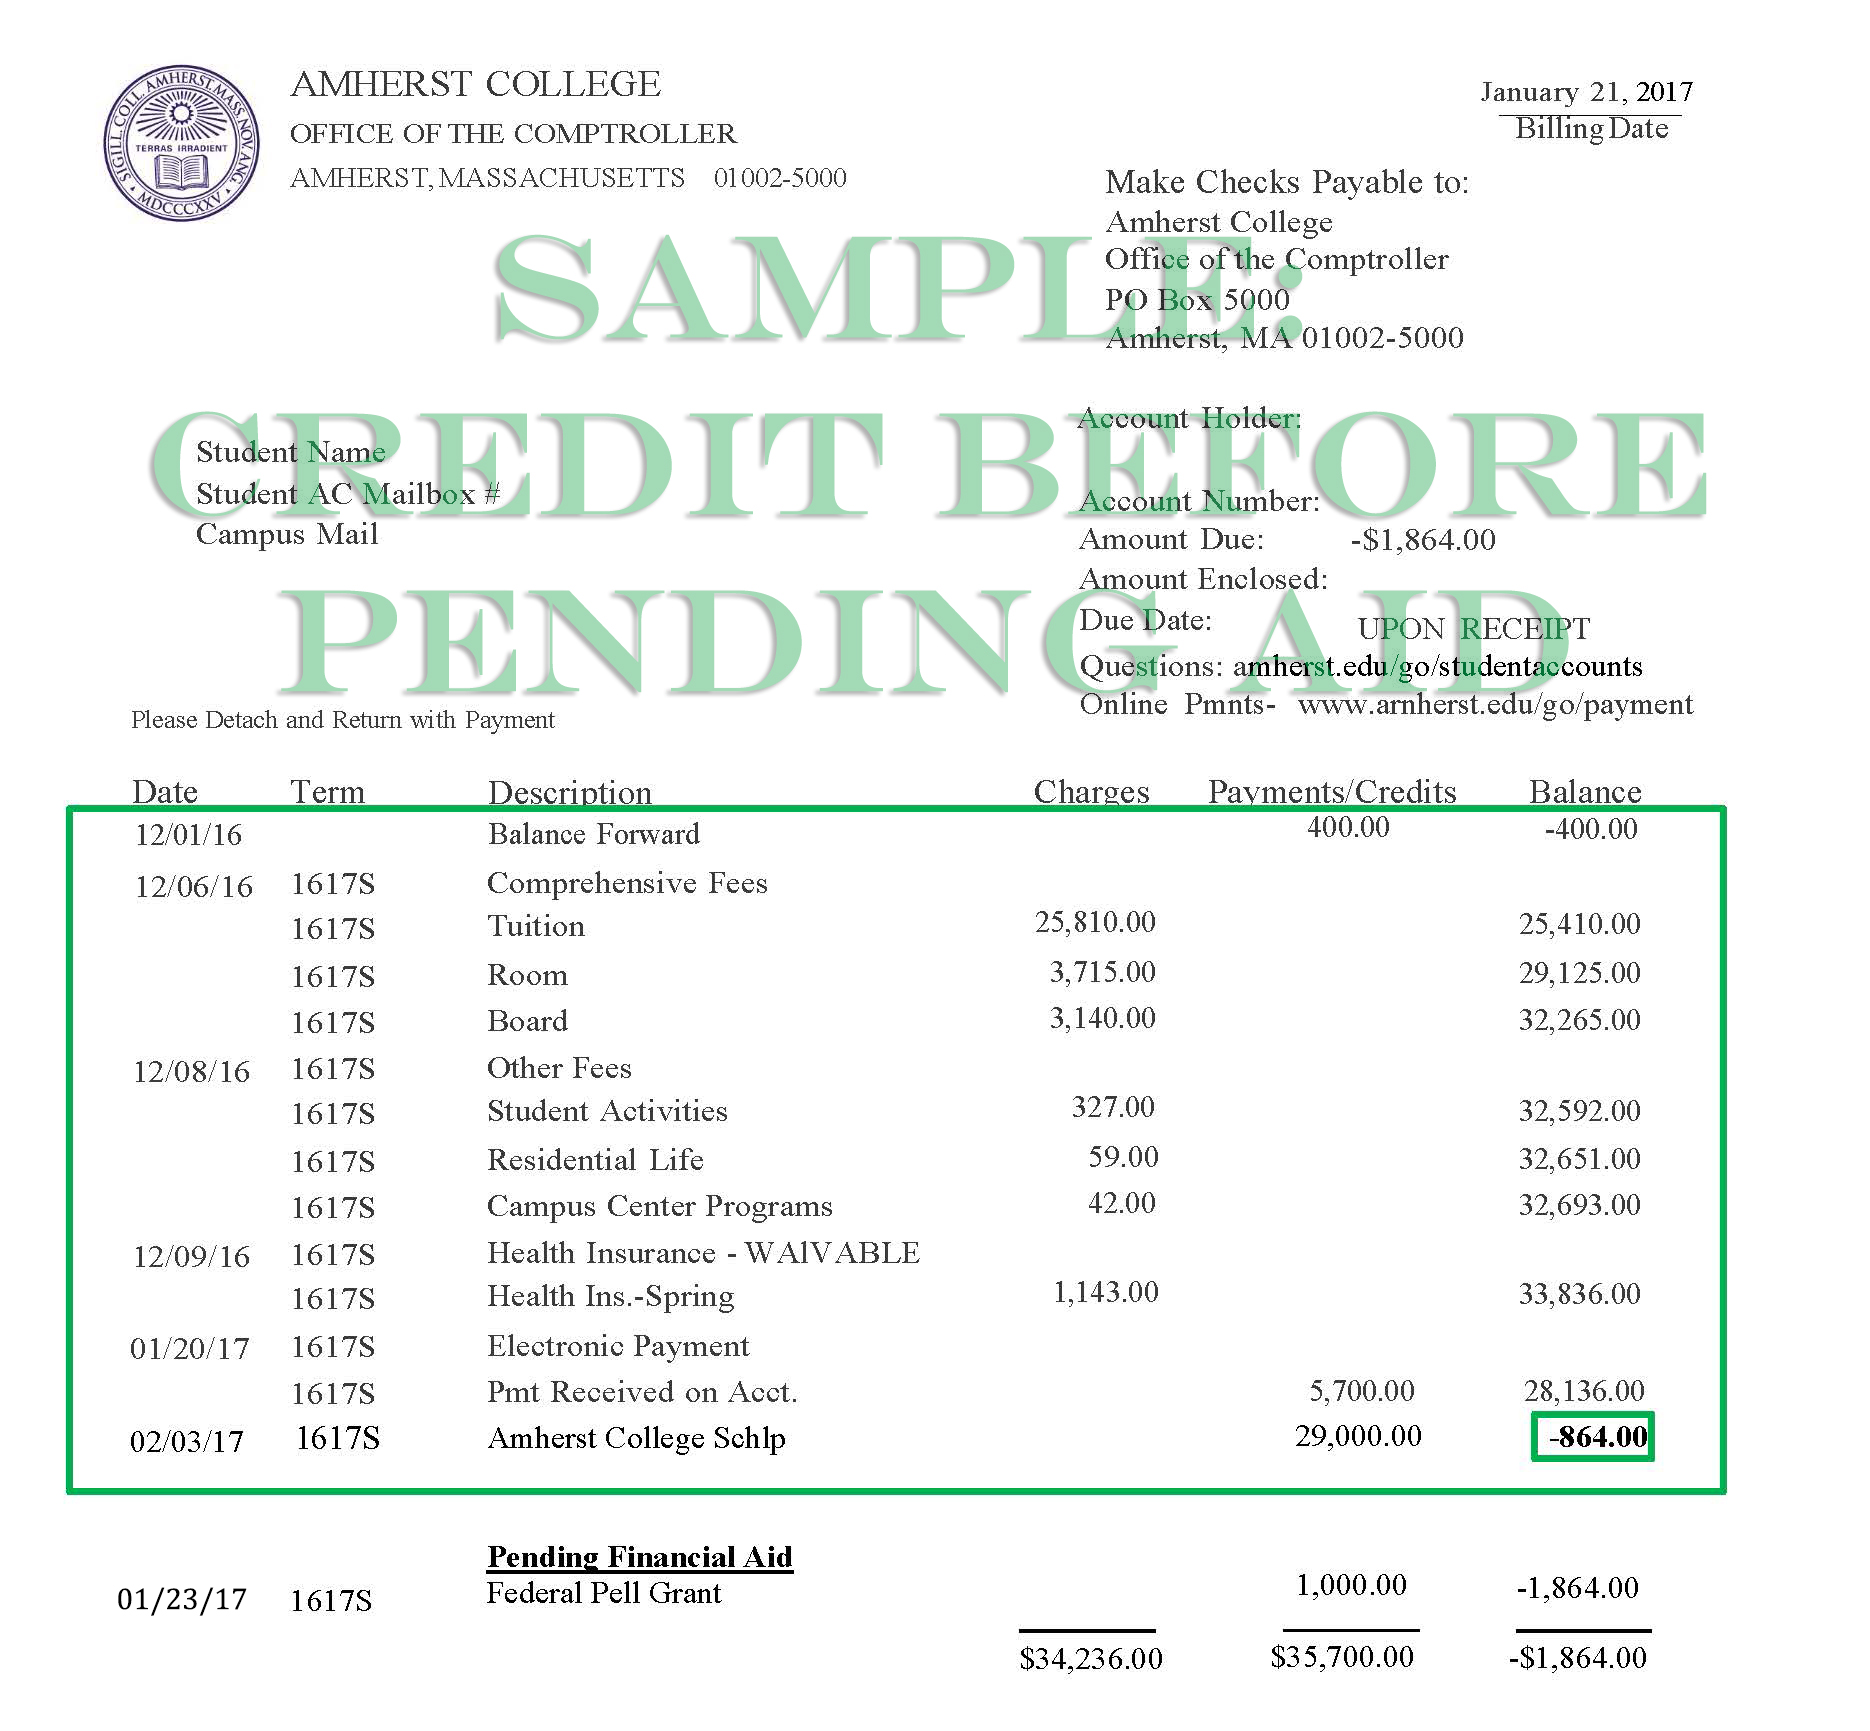 Sample Bill showing a credit balance before pending aid